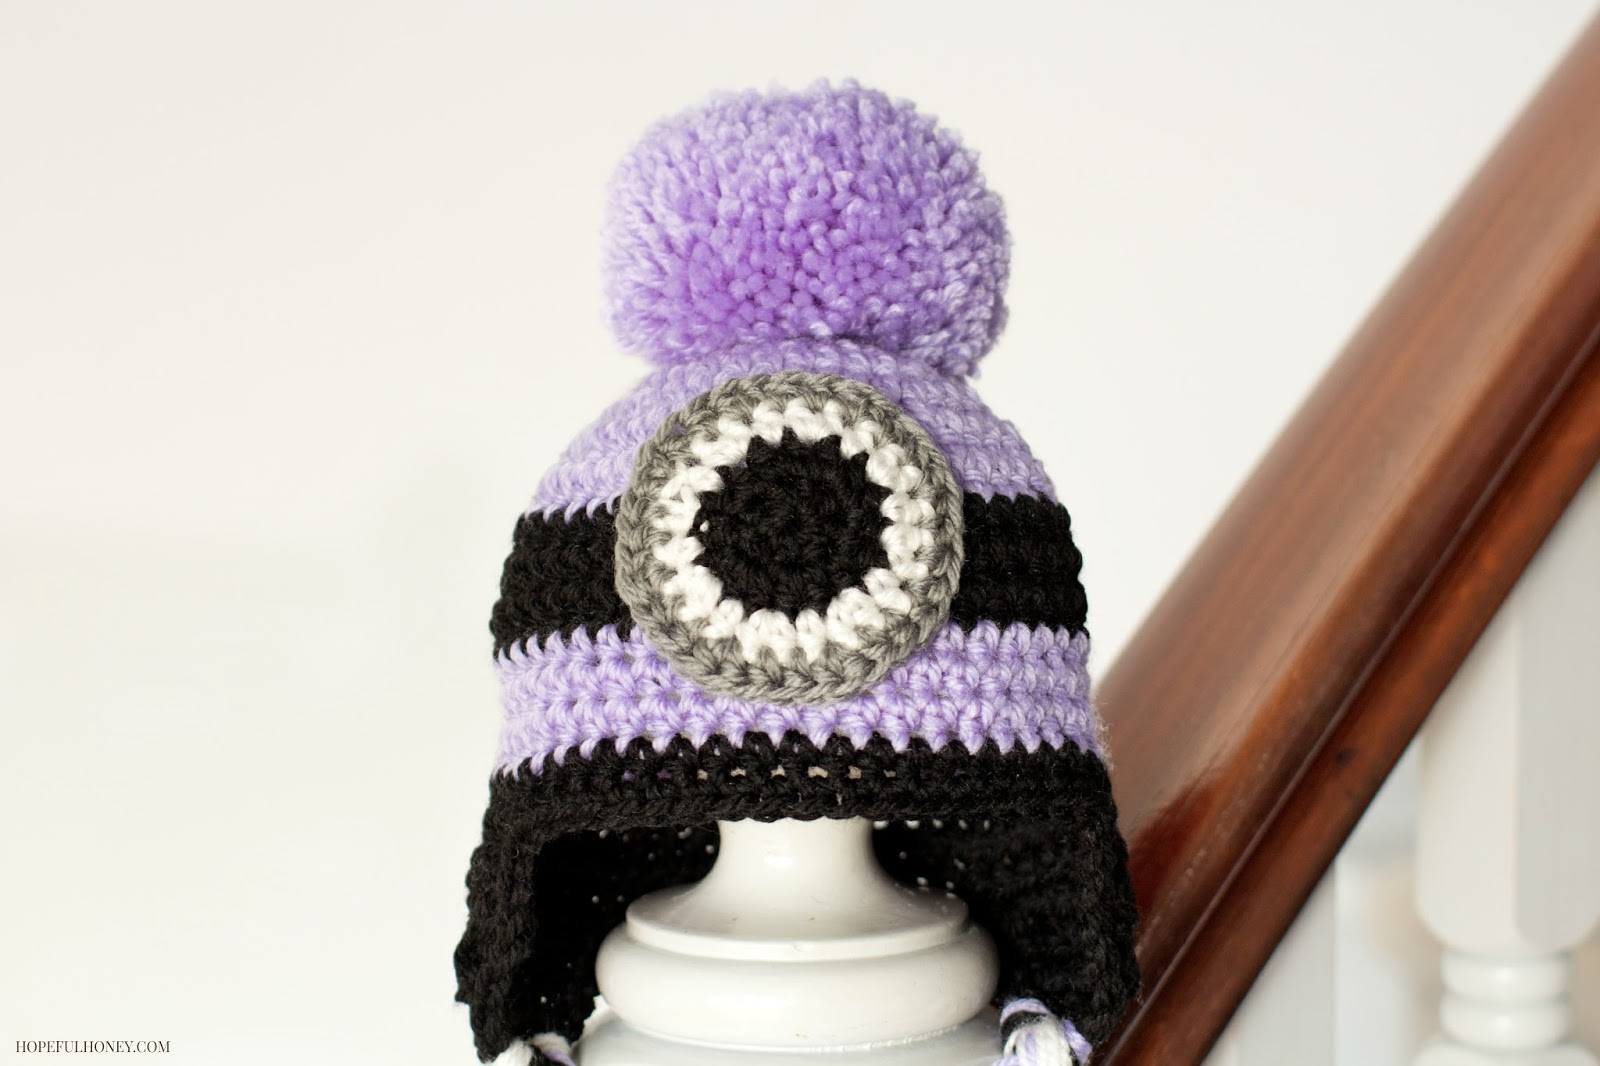 Crochet Hat Pattern For Minion : Hopeful Honey Craft, Crochet, Create: Evil Minion ...